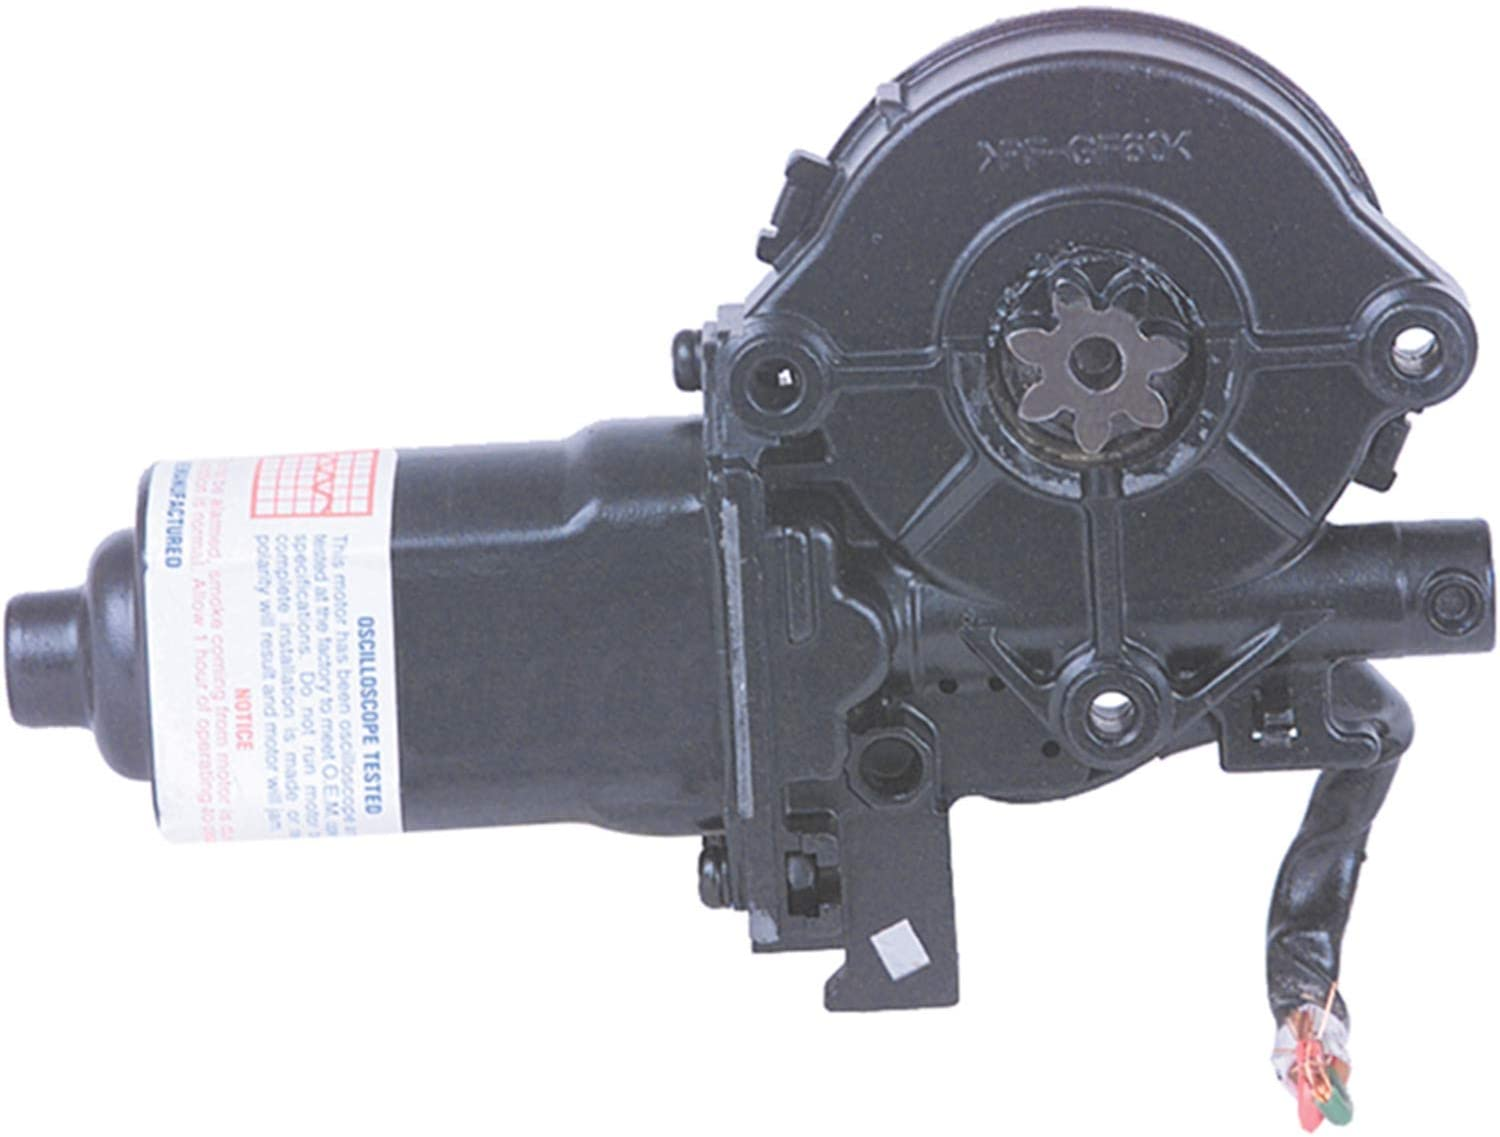 Cardone 47-1137 Remanufactured Import Window Lift Motor